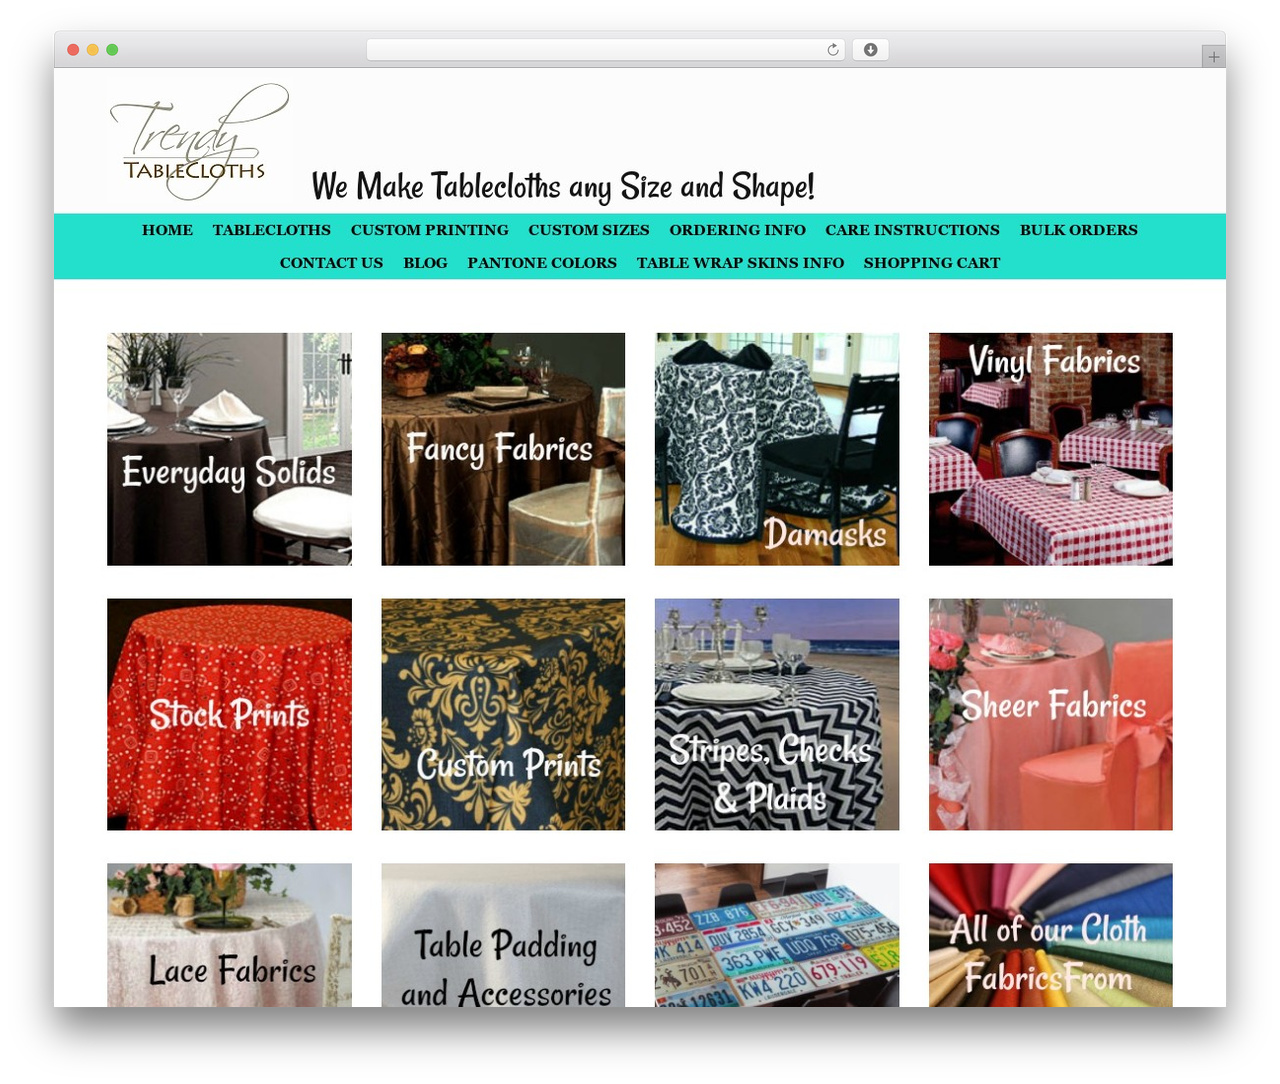 WordPress theme Vantage Premium - trendytablecloth.com